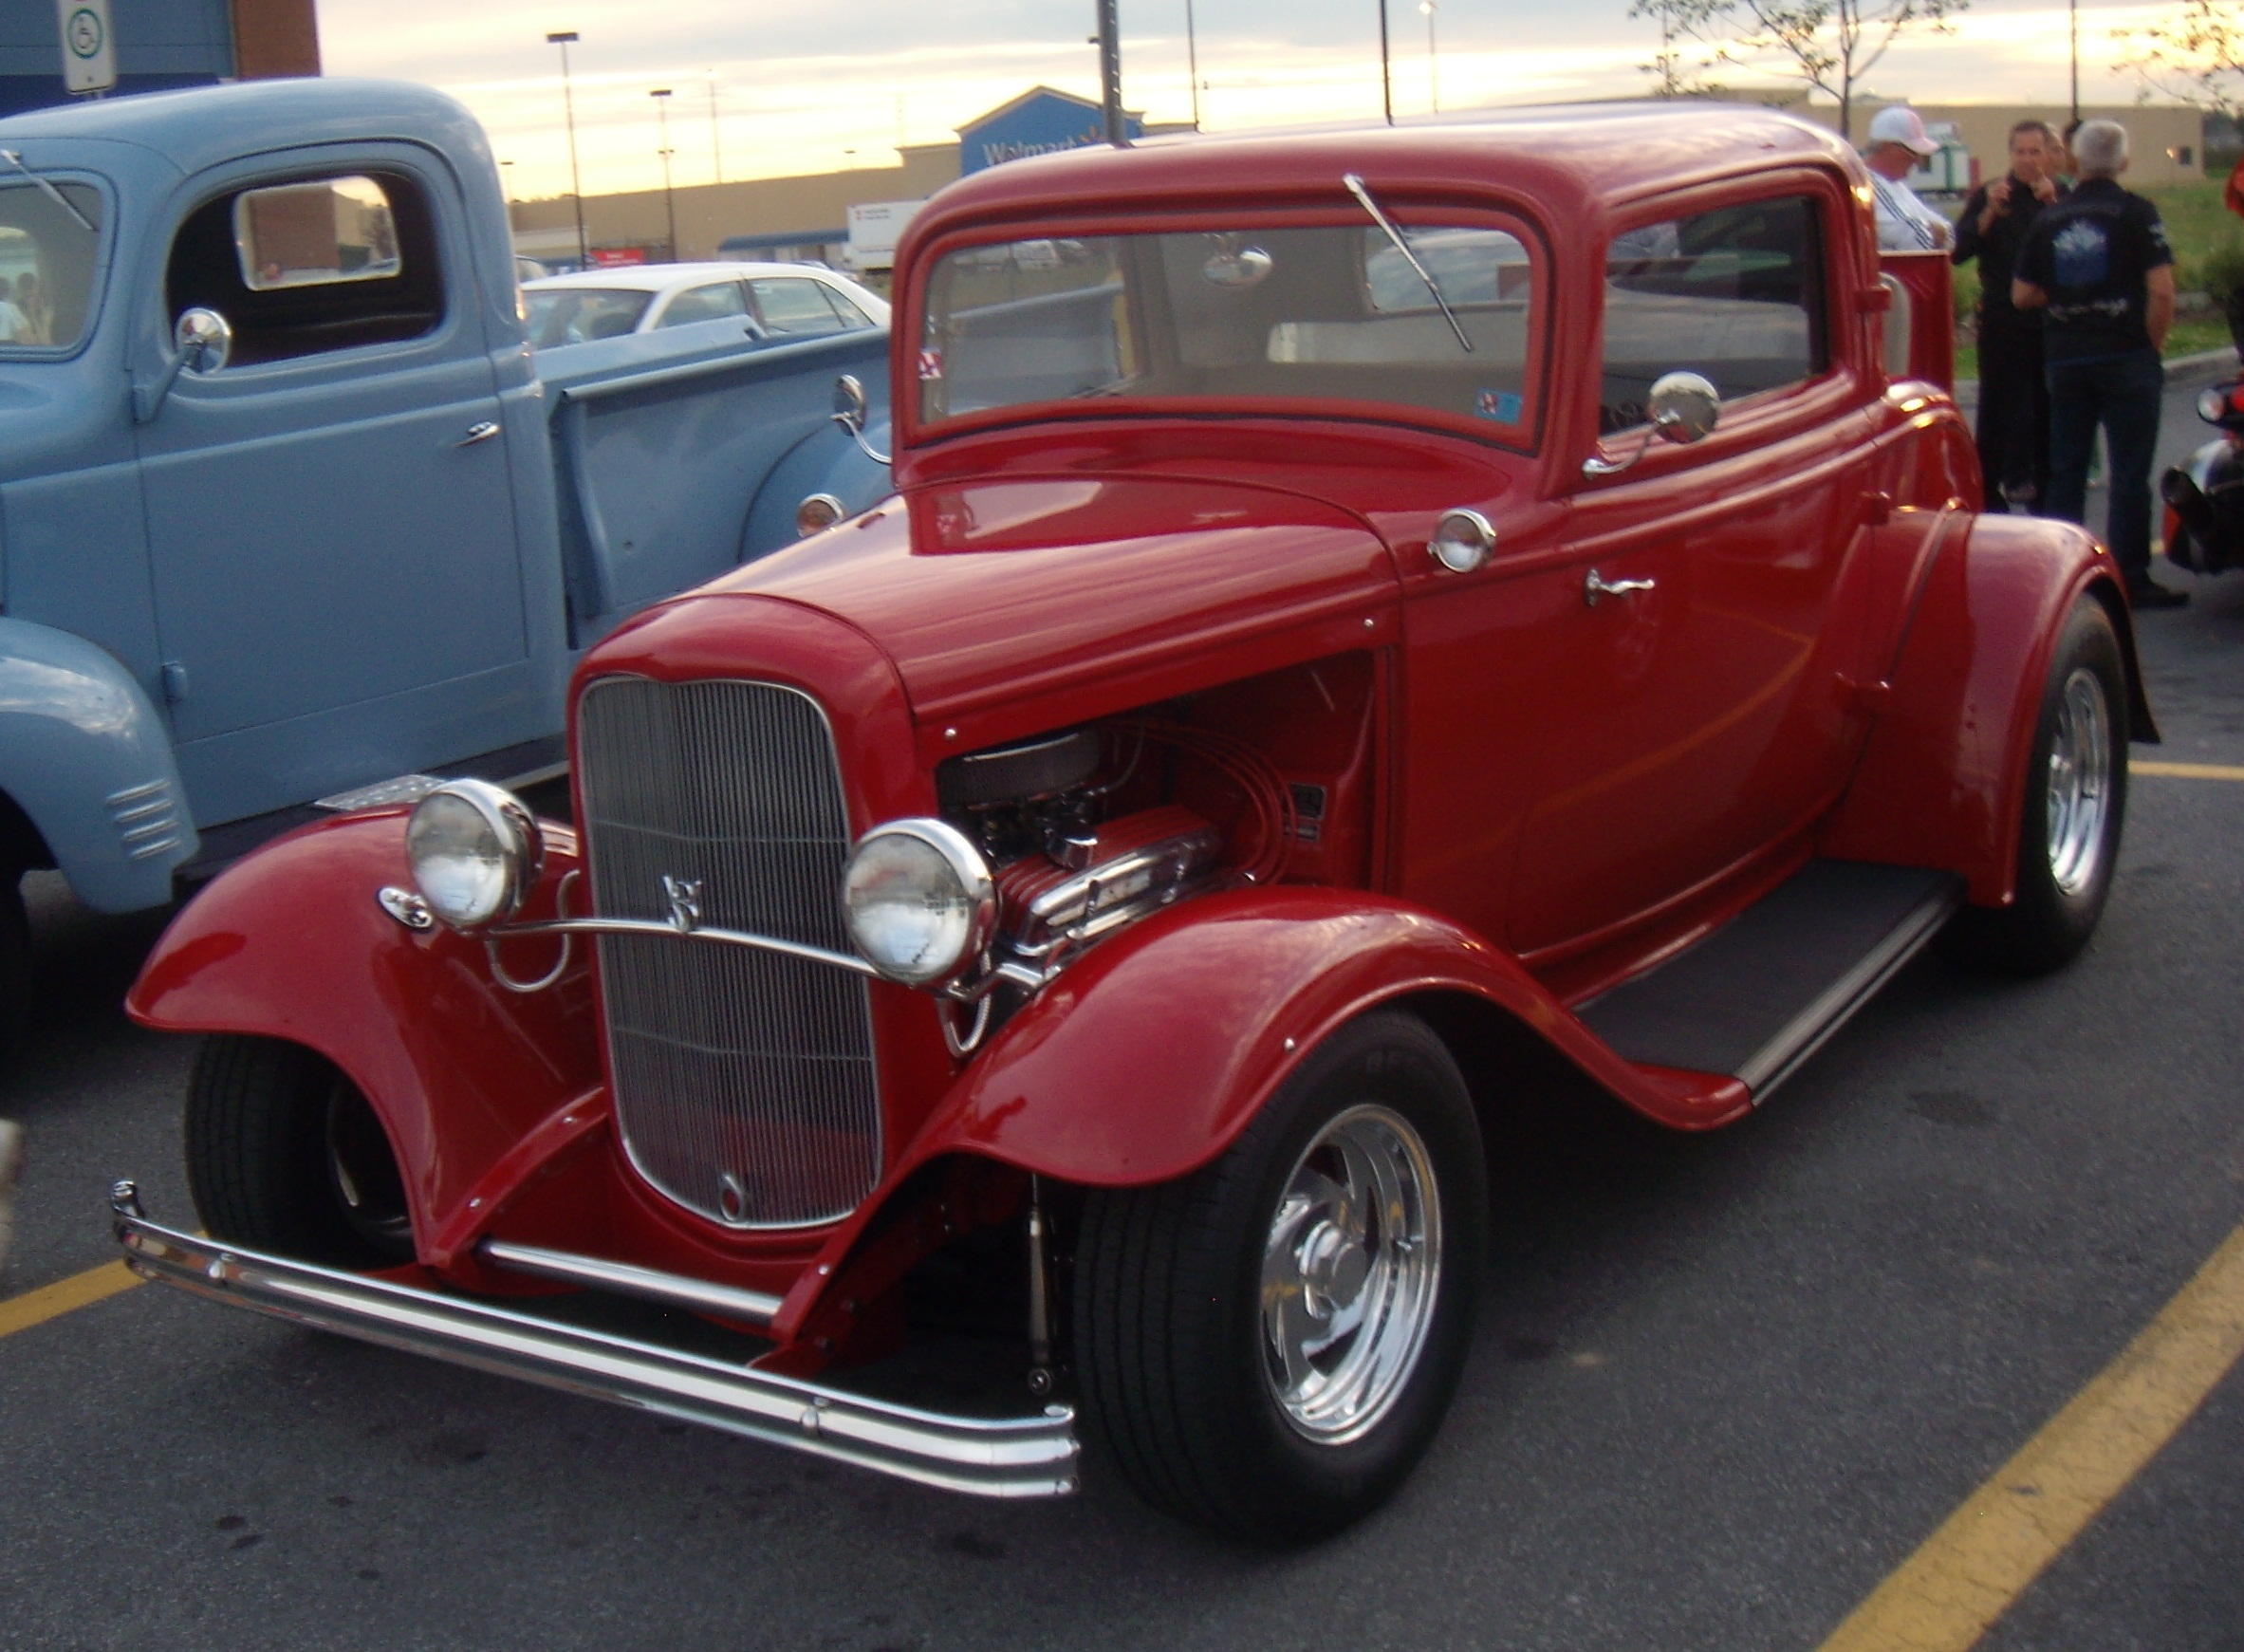 32 Ford Coupe For Sale Craigslist >> File:'32 Ford Model B V8 (Auto classique Bellepros Vaudreuil-Dorion '11).JPG - Wikipedia